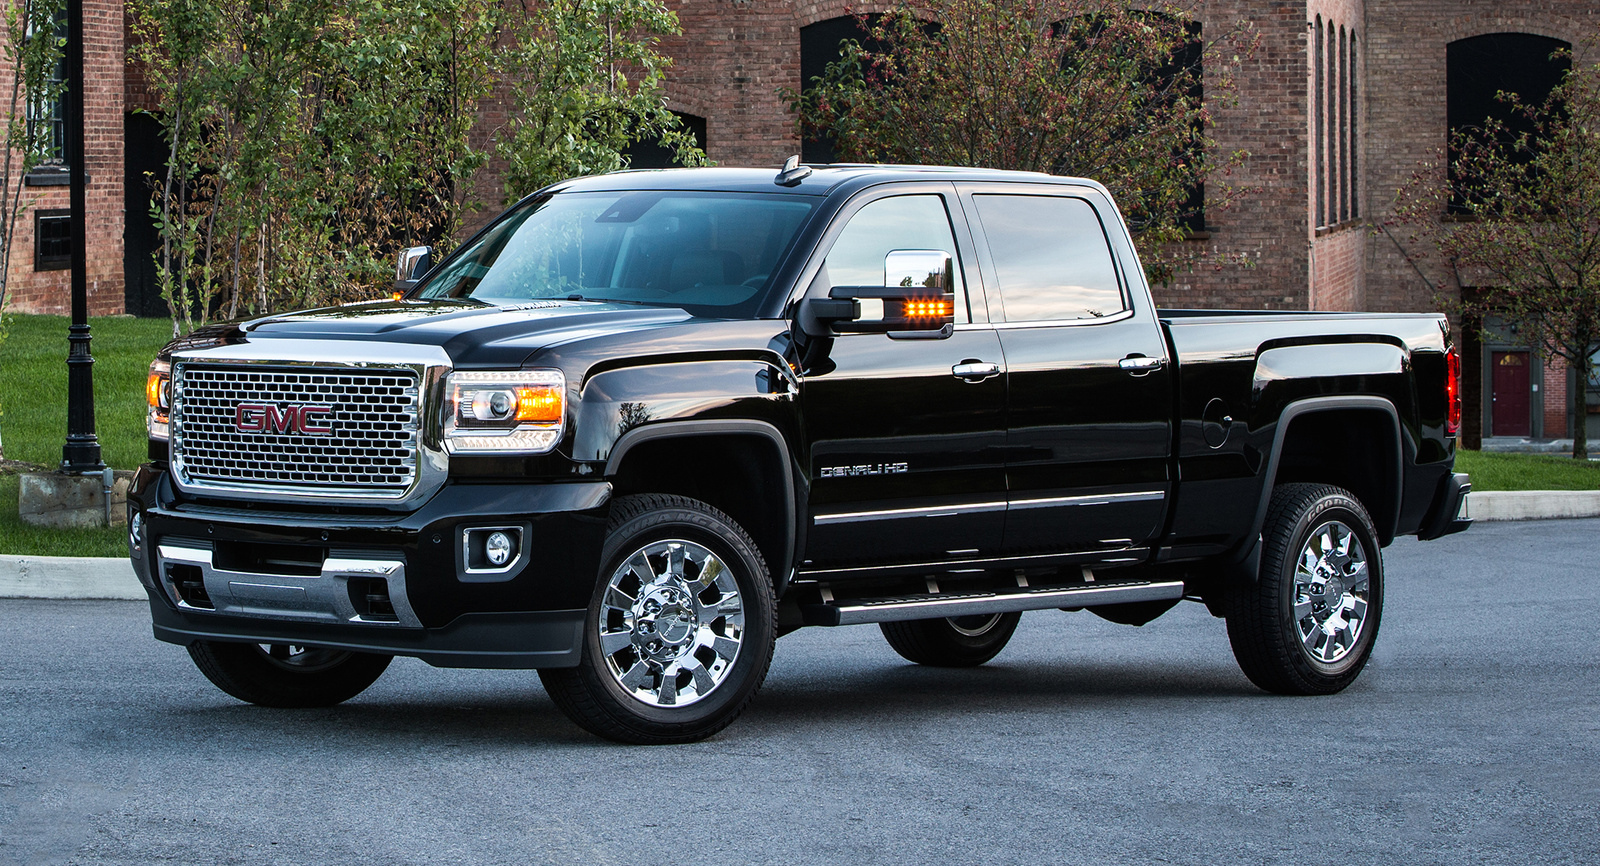 2017 gmc sierra 3500 hd slt crew cab car photos catalog 2018. Black Bedroom Furniture Sets. Home Design Ideas